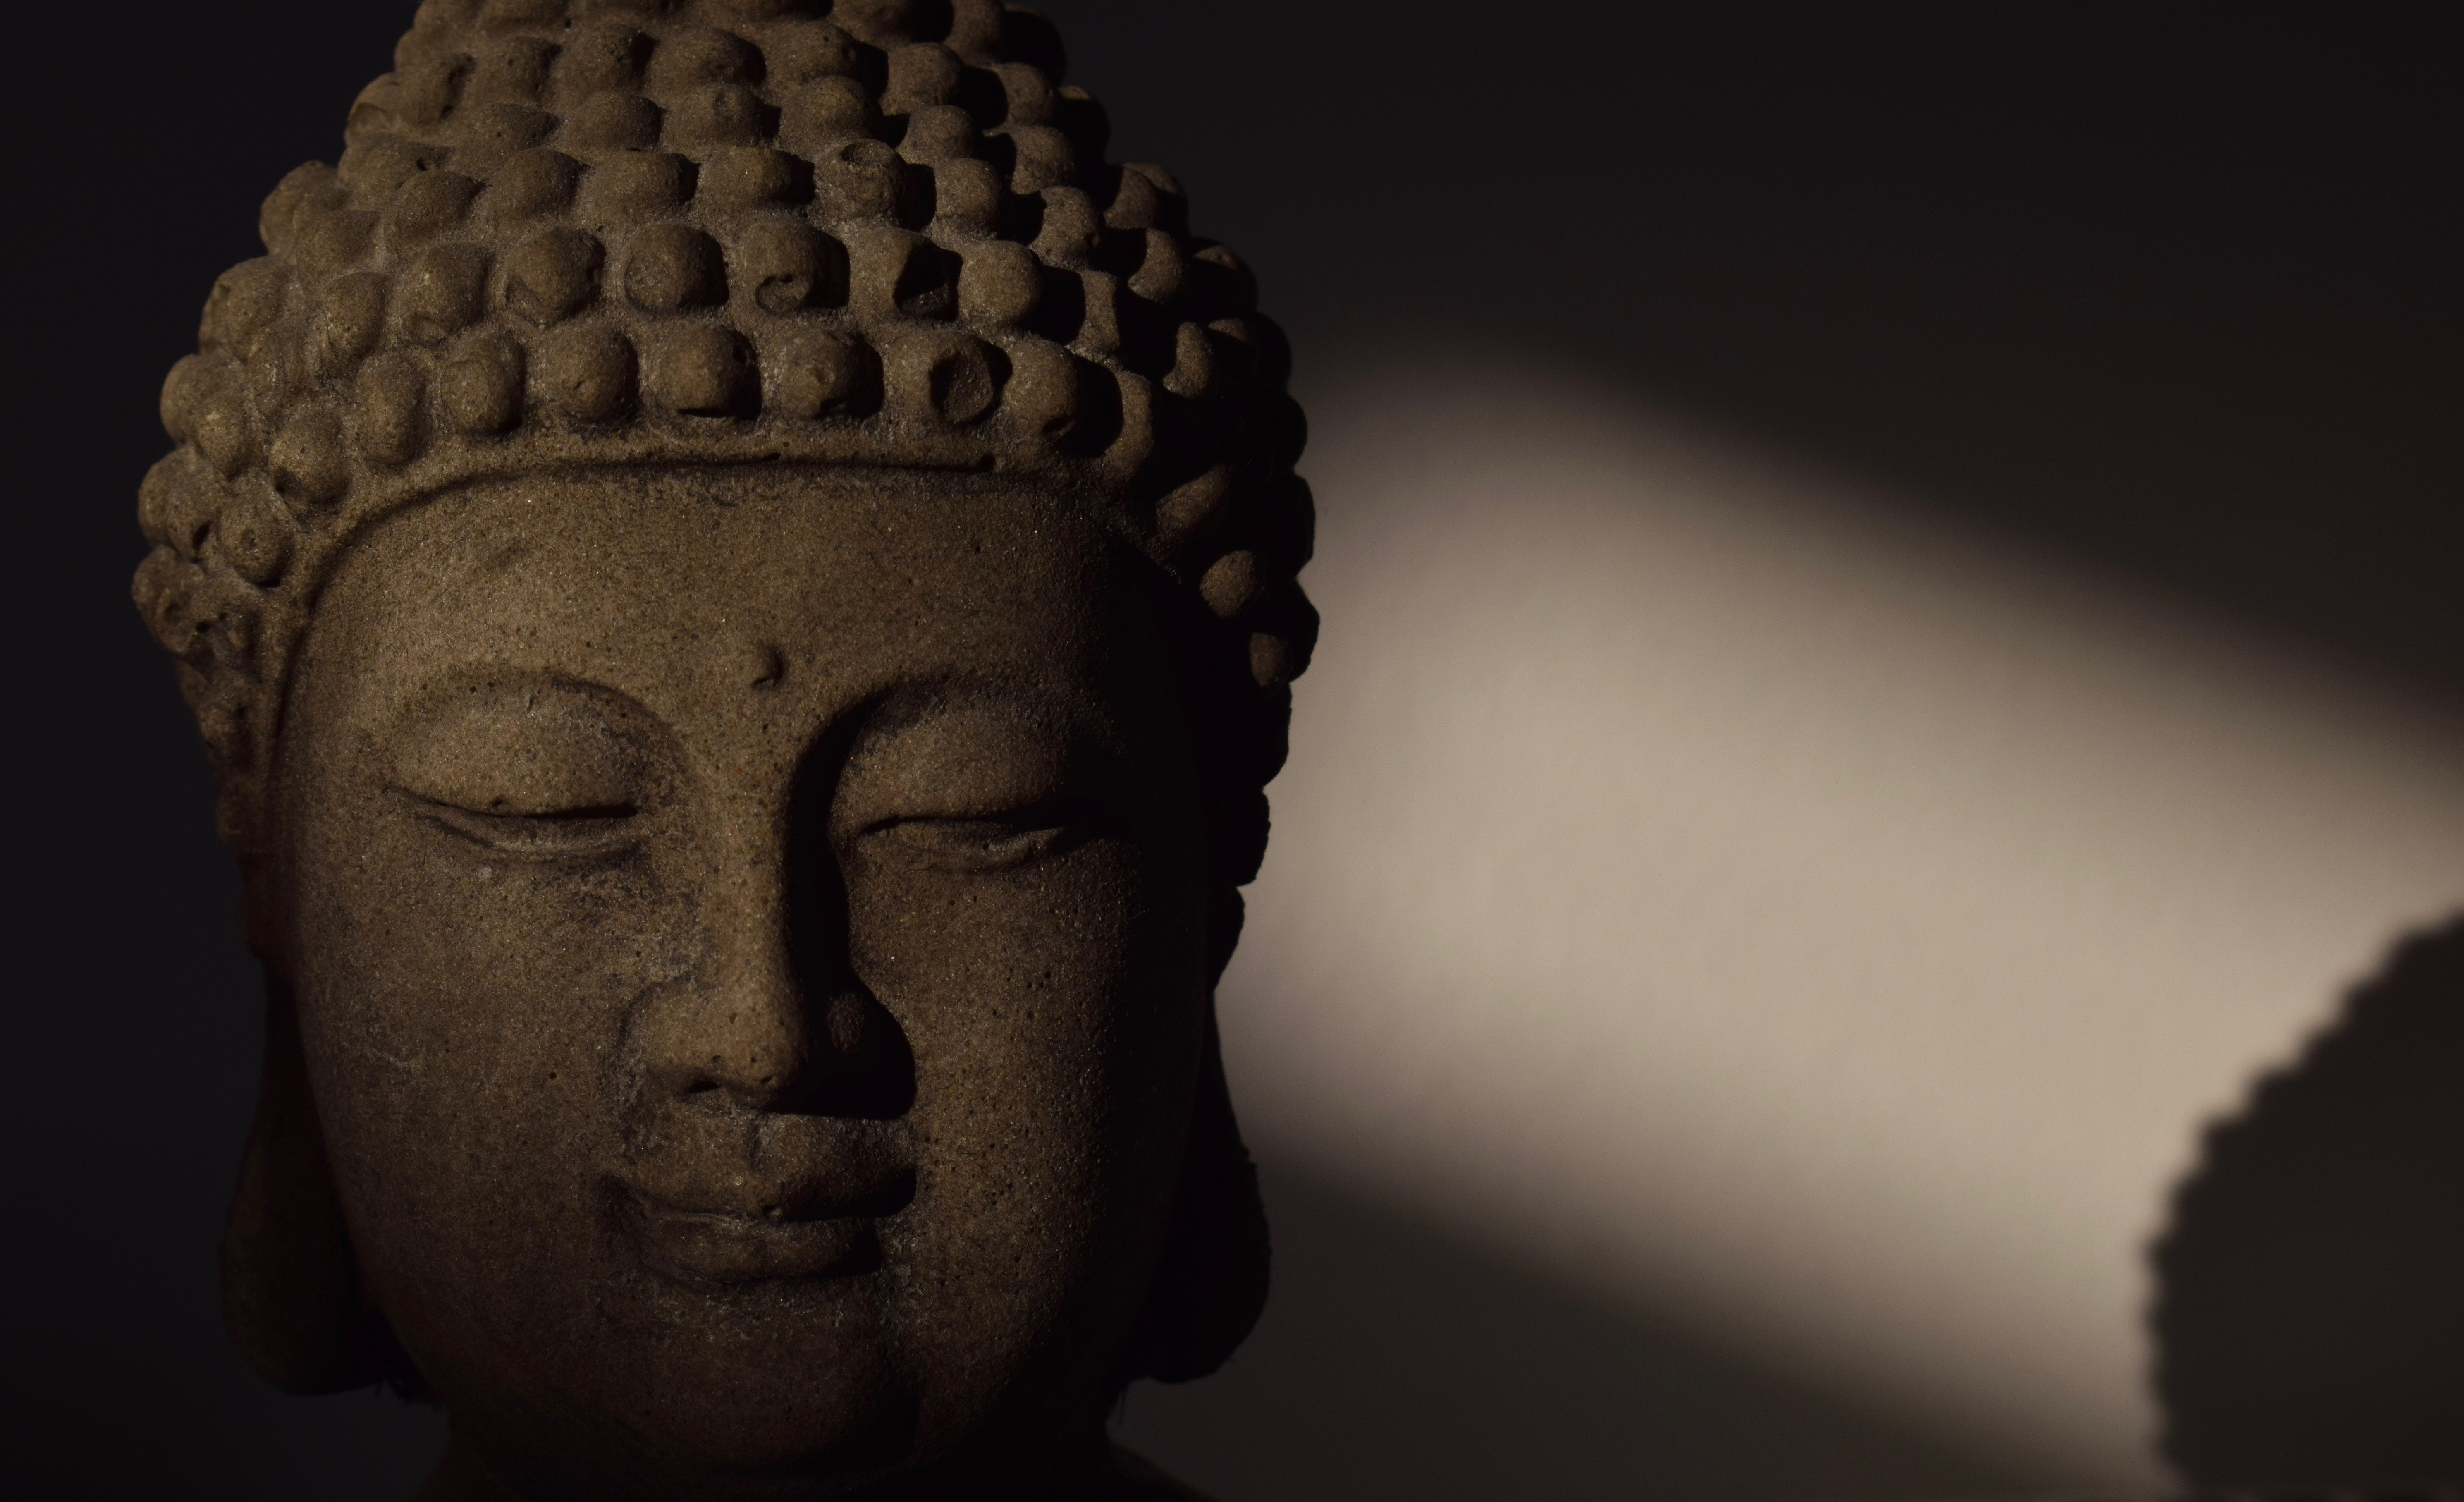 An end to suffering: 10 quotes on Buddhist philosophy